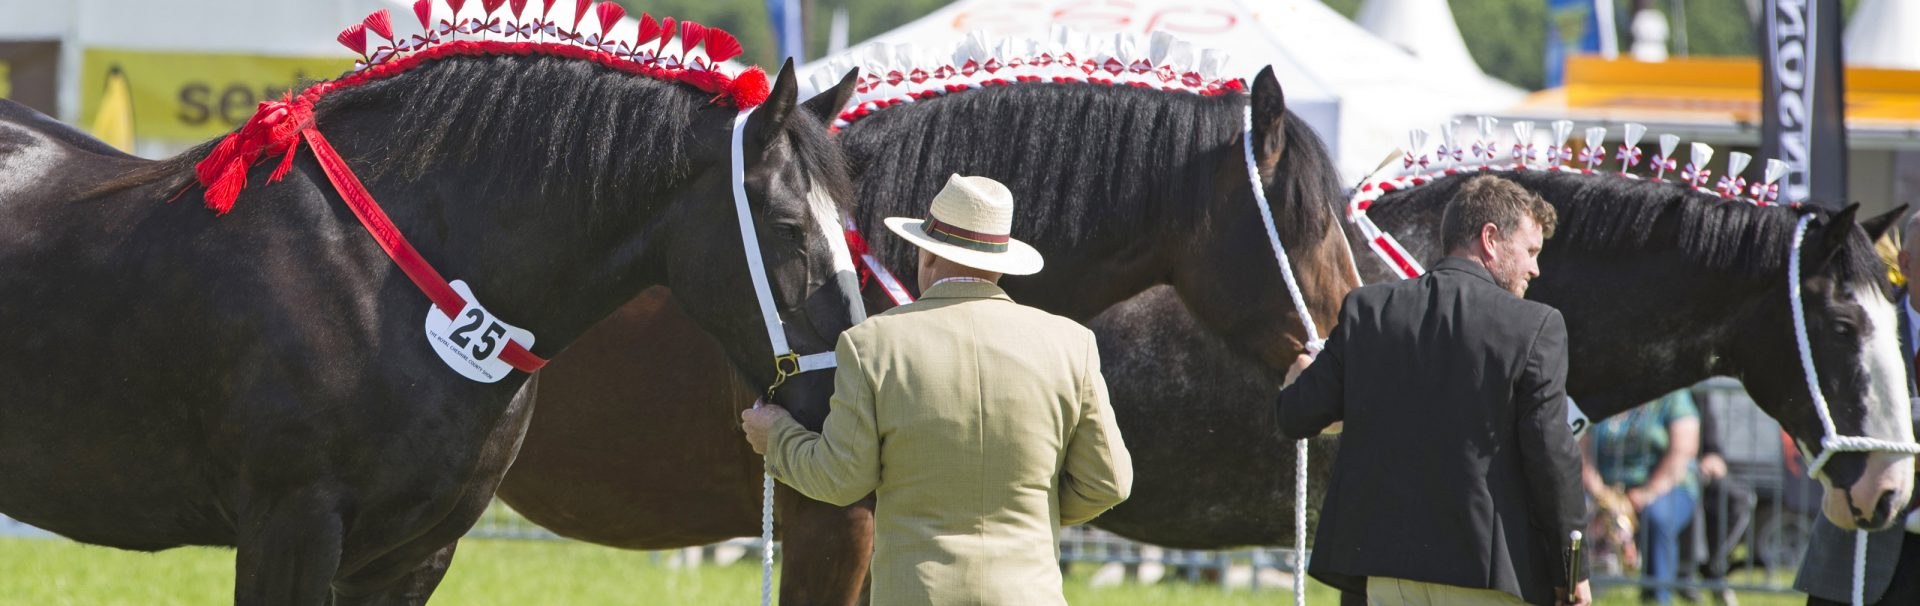 Trade Stands Hoys 2015 : Shire horses the royal cheshire county show